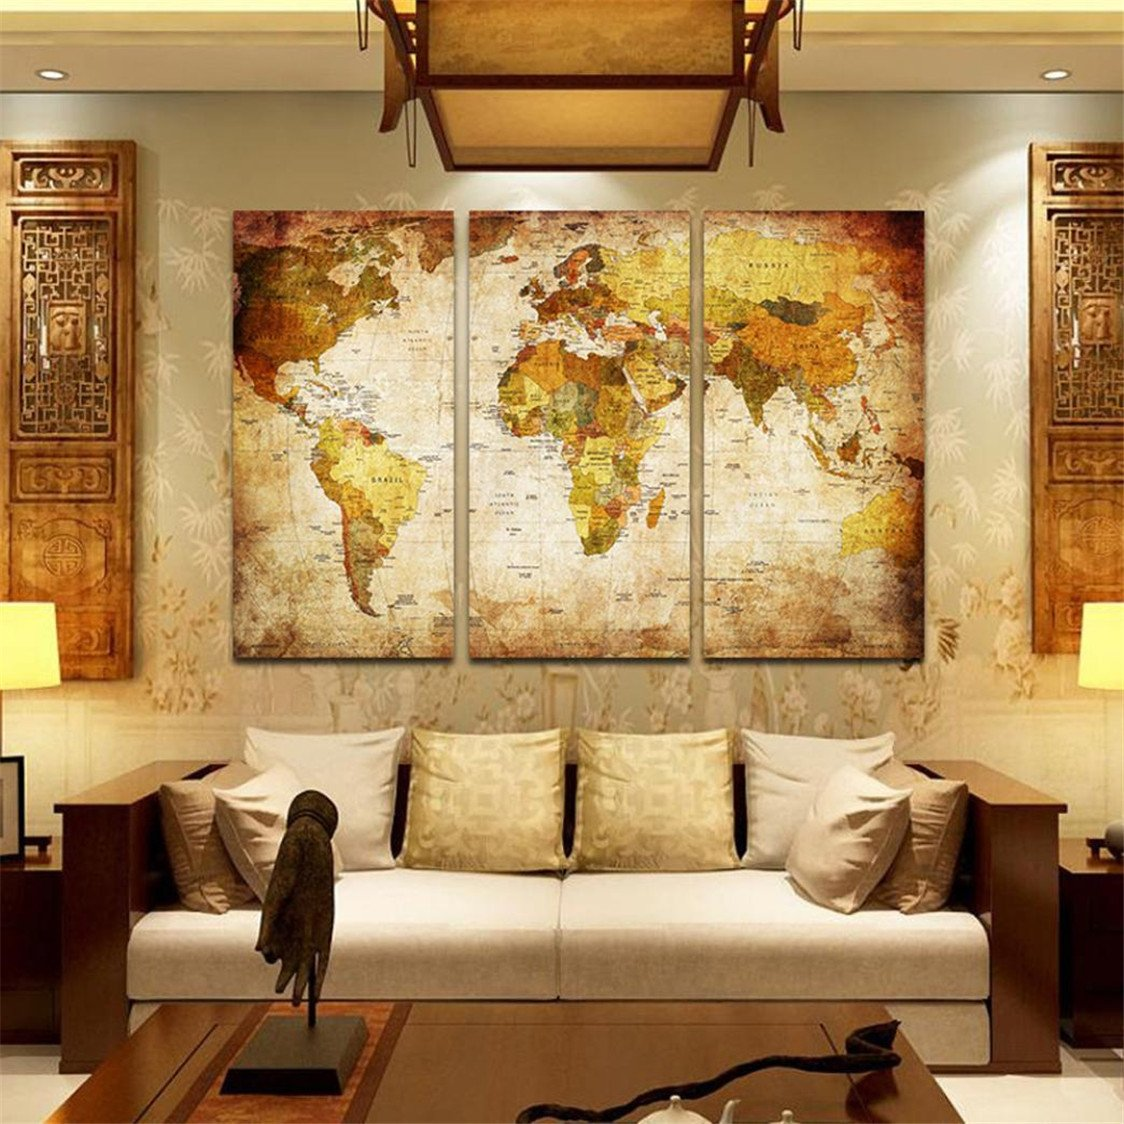 Amazon.com: 3 Pcs/Set 4080 inch Unframed Modern Home Wall Room ...